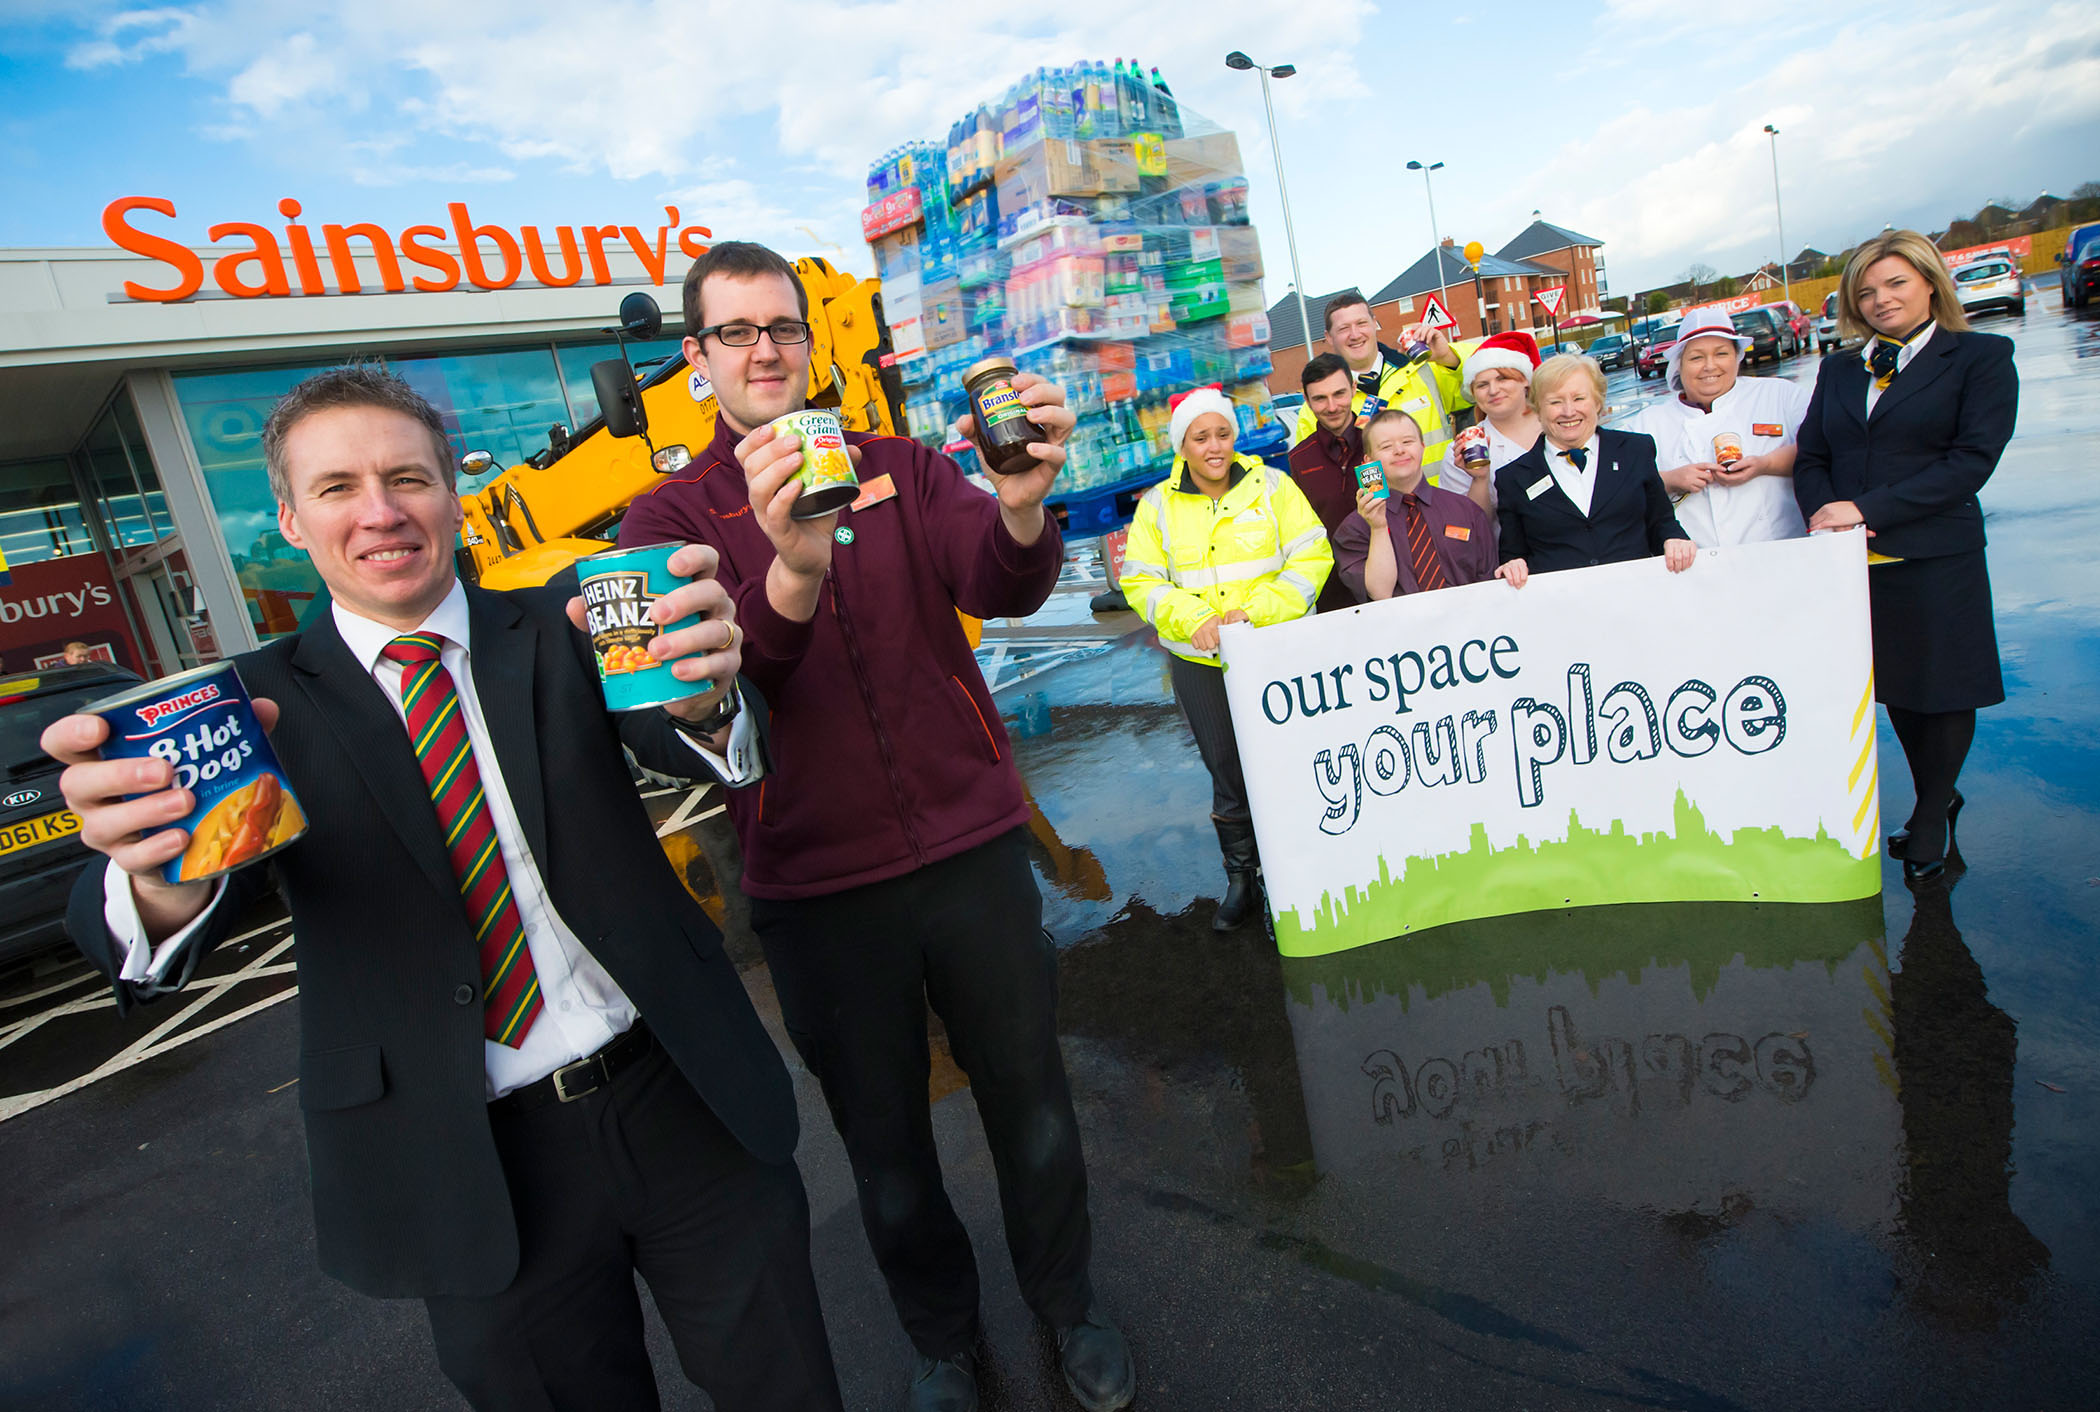 Justin Corner, David Wilson Homes North West and Pete Webb, Fresh Food Manager at Sainsbury's with staff from the two firms launching the Christmas appeal